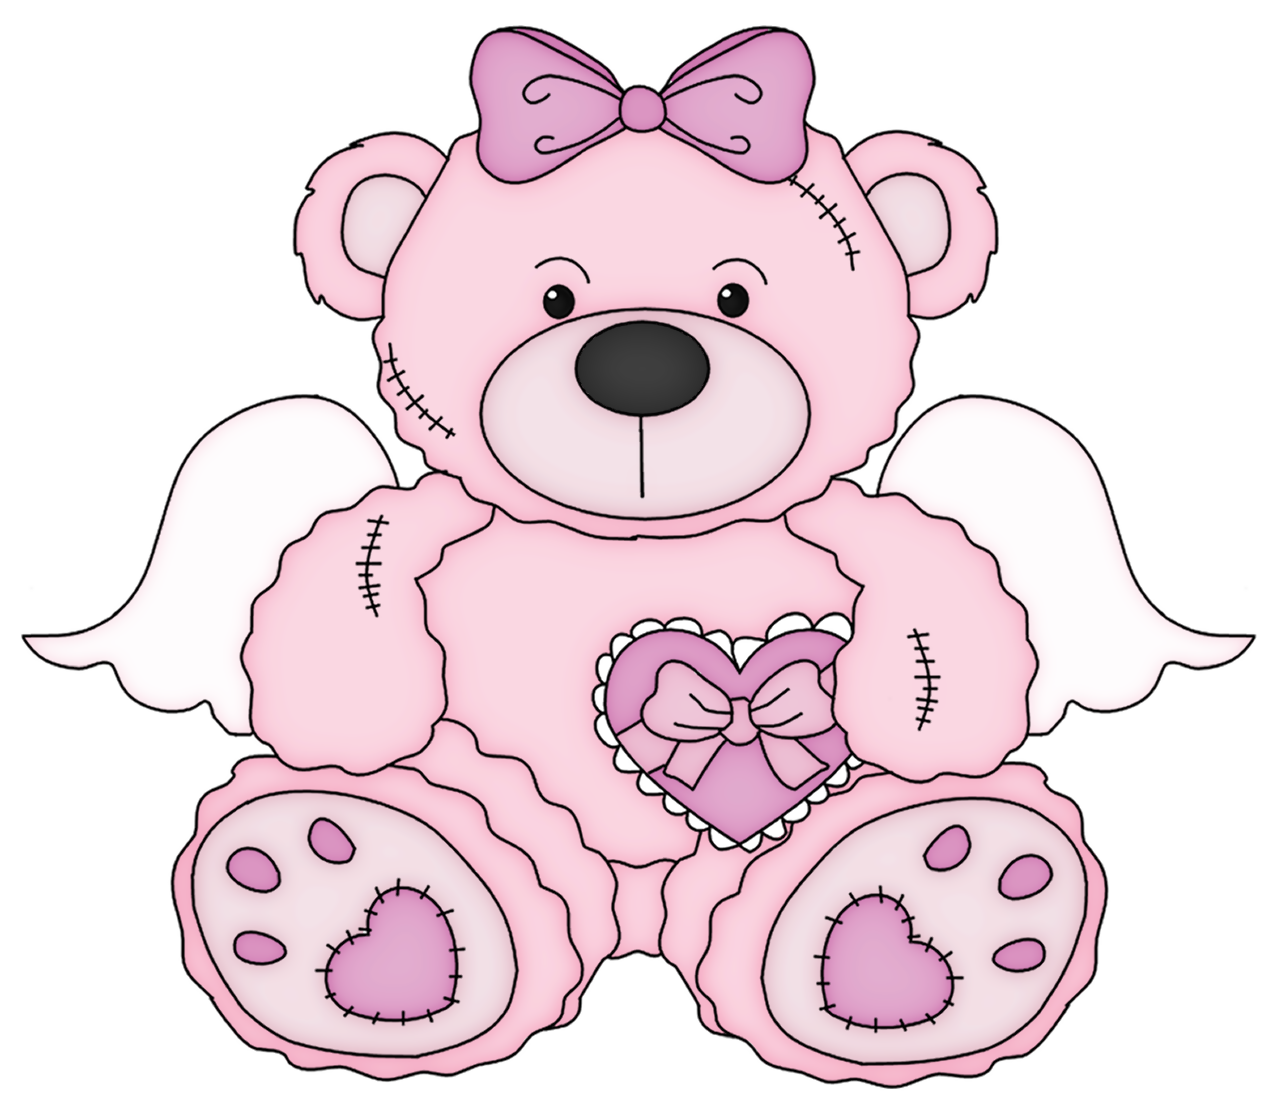 1280x1101 Cute Bear Cute Baby Girl Clip Art Cute Teddy Bear Vector